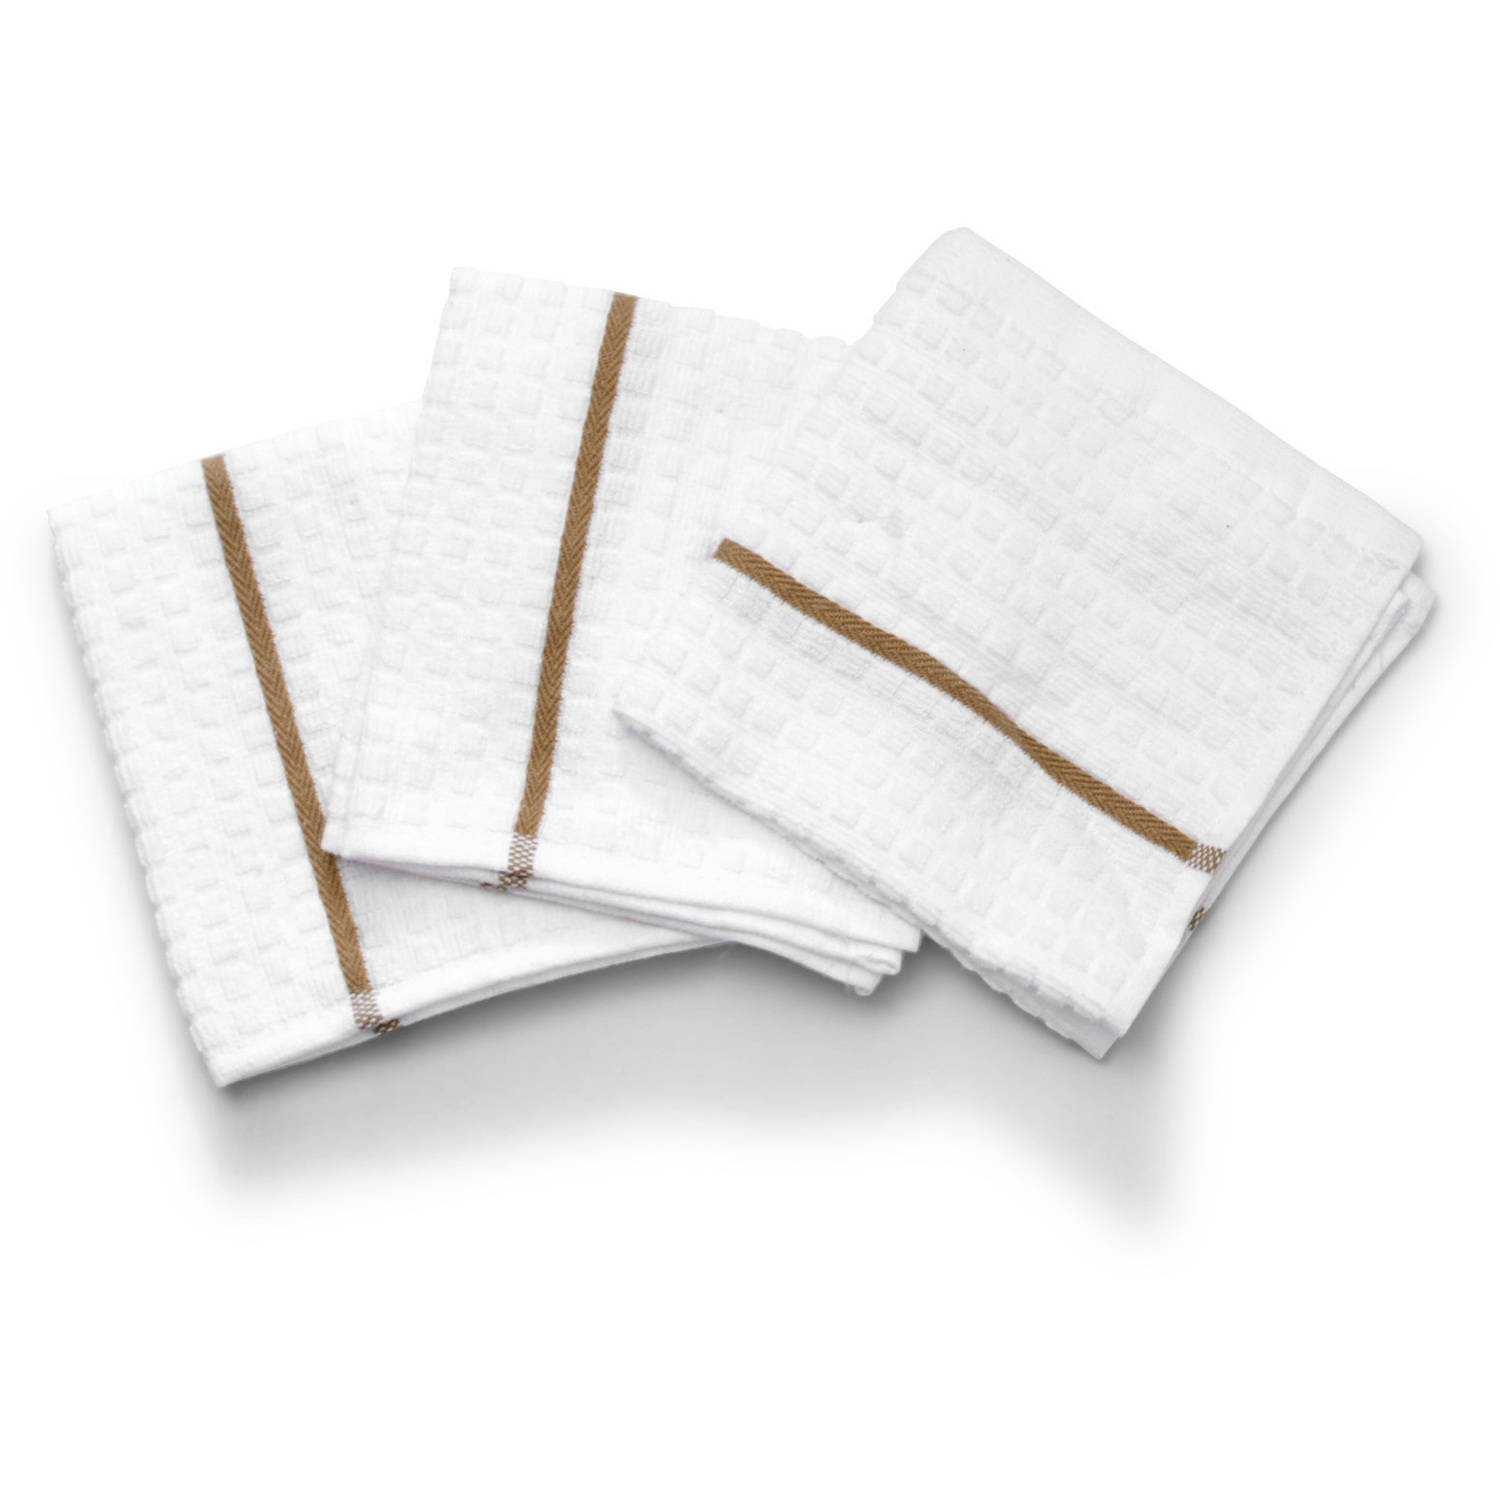 Clorox Dish Cloths 3 pack, Bleach-Safe Color, Anti-Microbial Protection